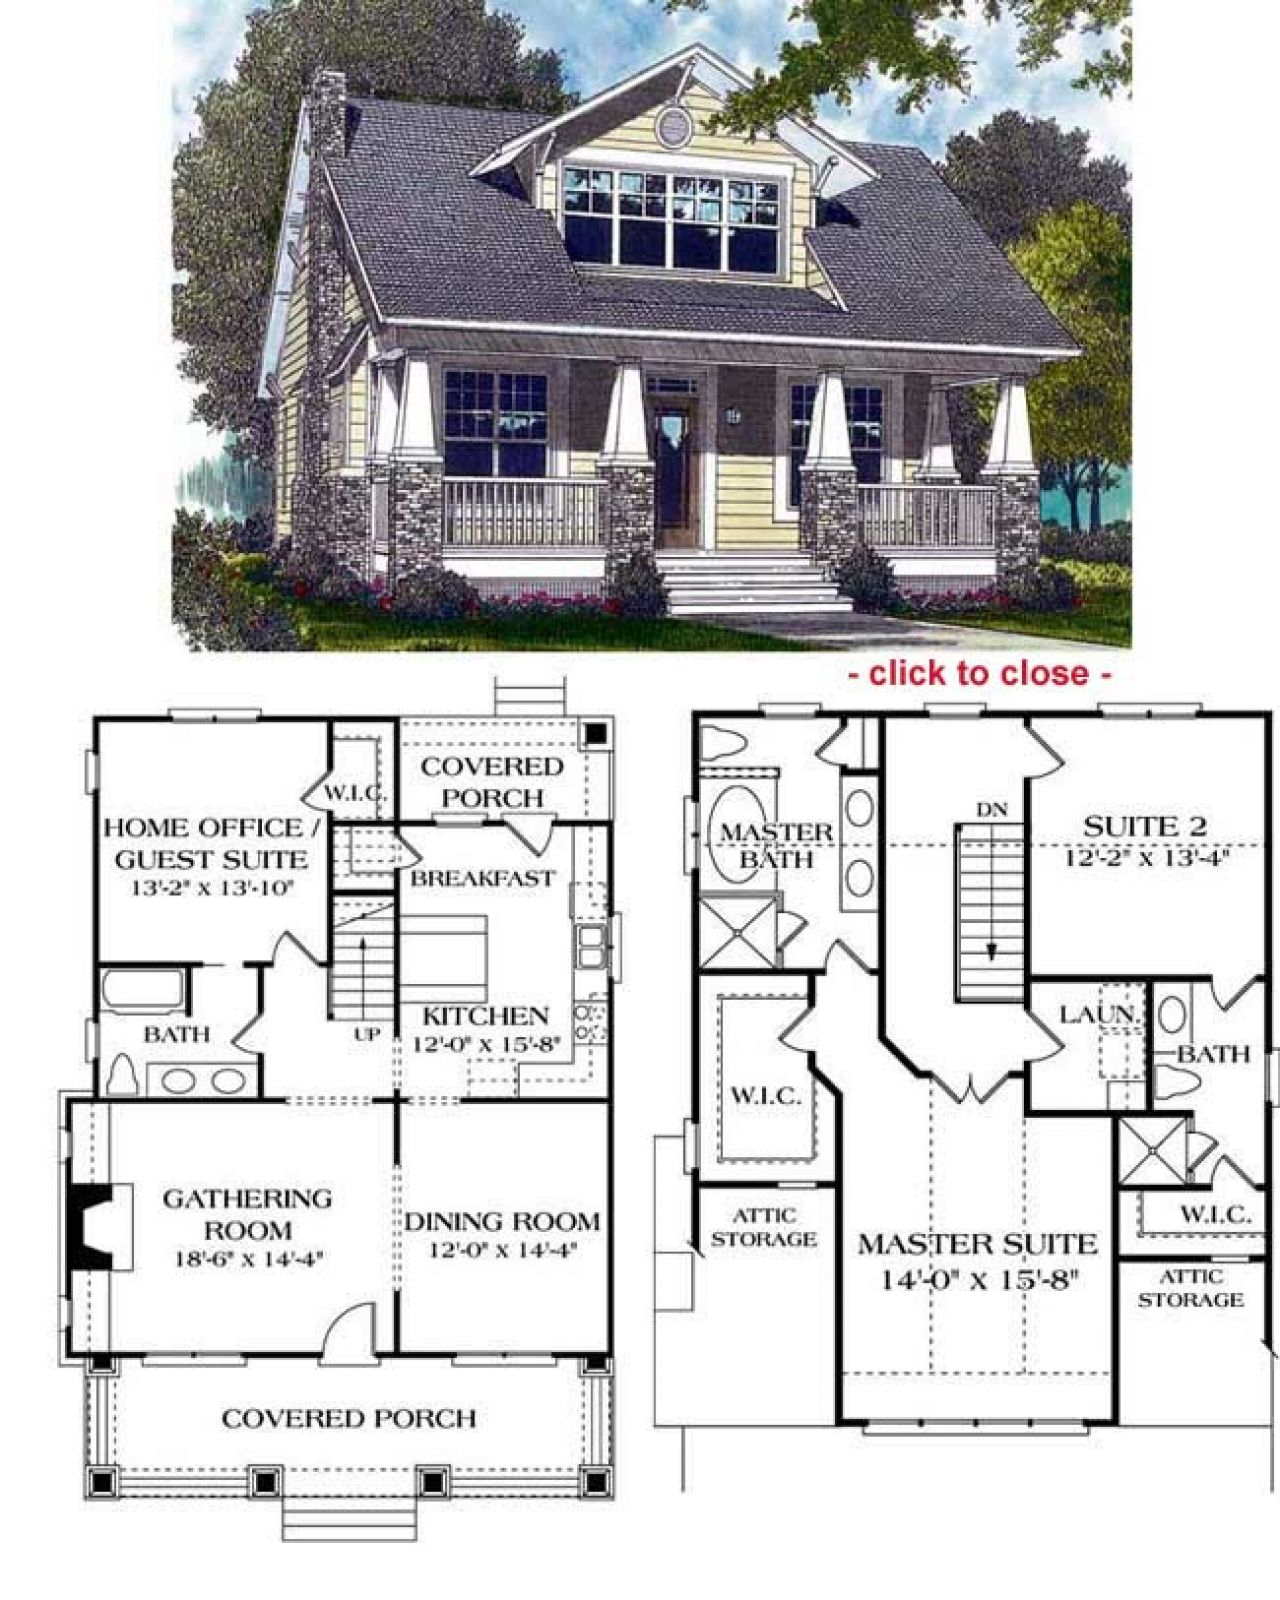 Bungalow house styles craftsman house plans and for Craftsman house floor plans